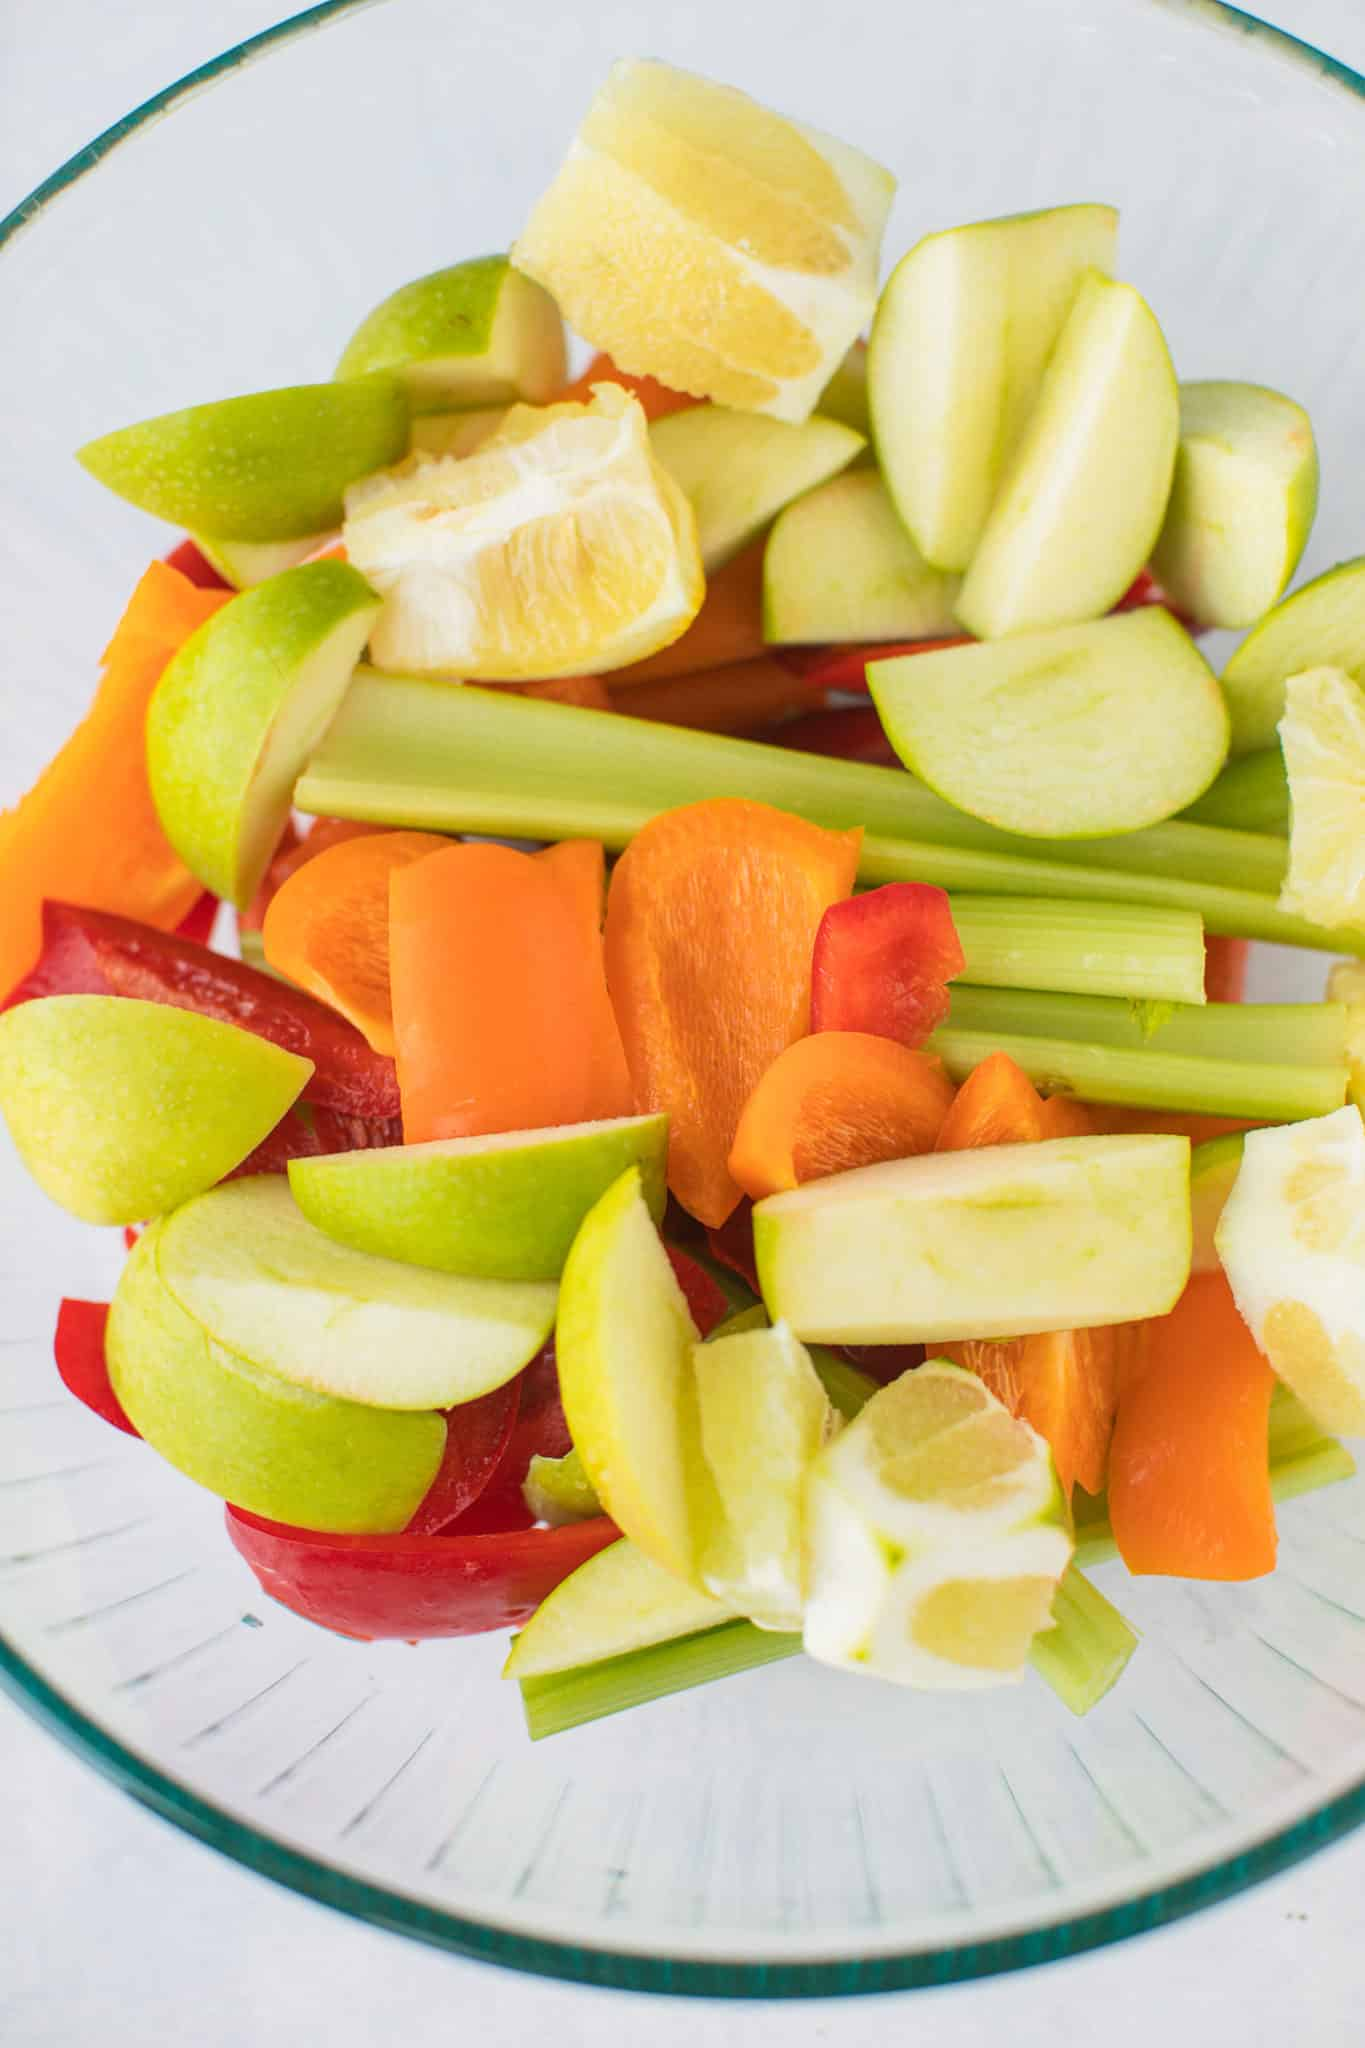 chopped apple, lemon, celery, carrots, and bell pepper for juicing